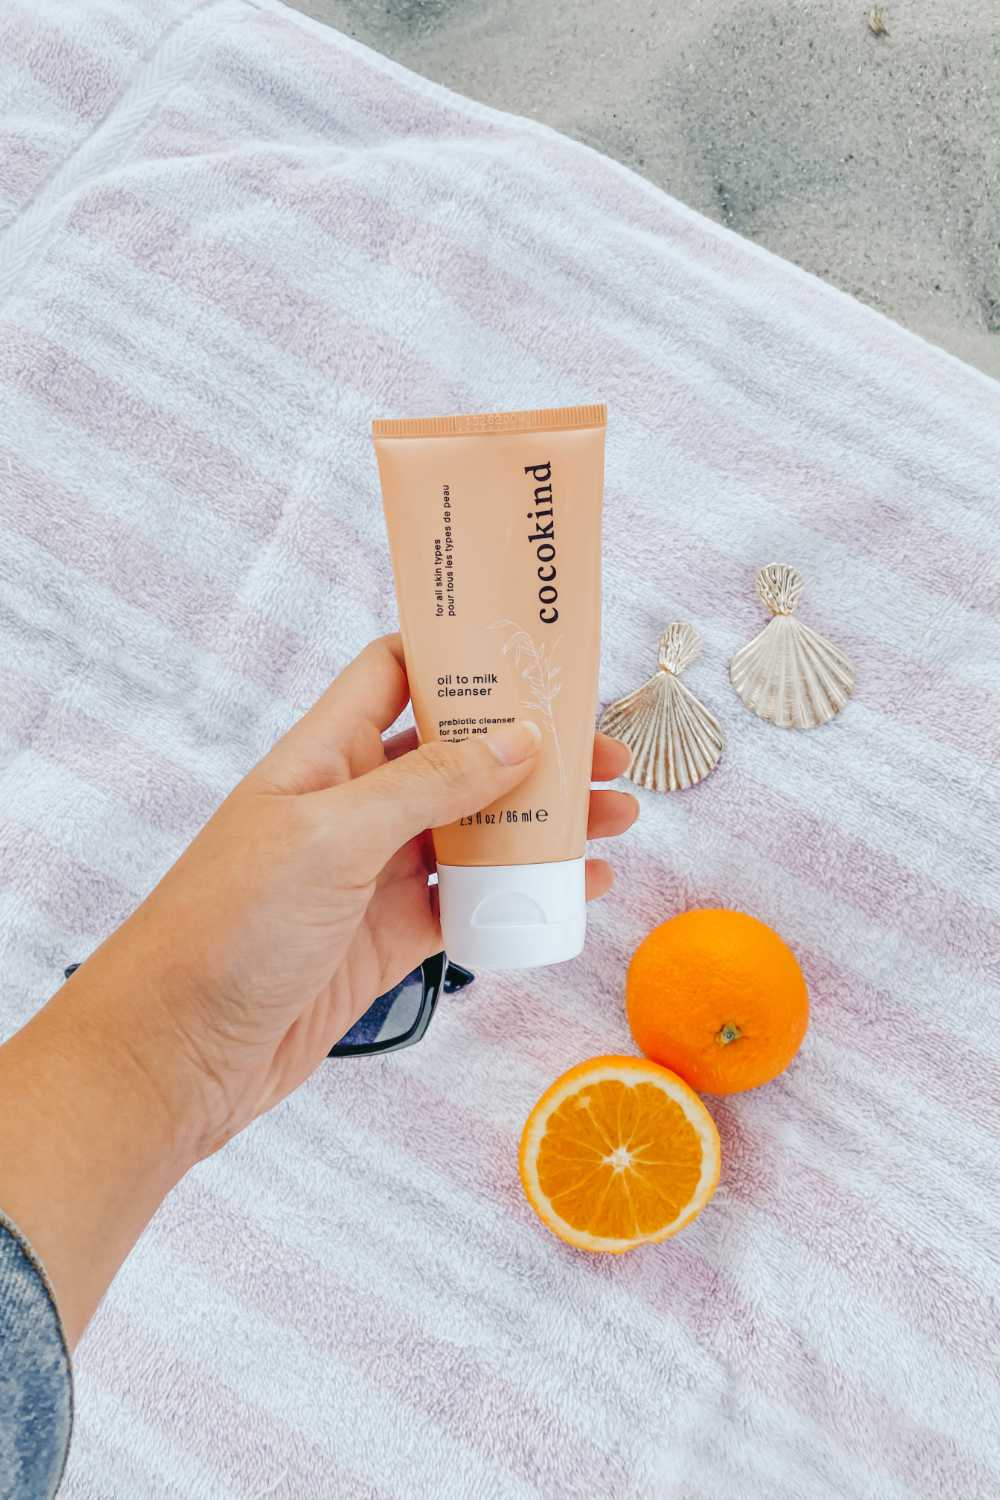 Cocokind Review. Cocokind Products. Cocokind Sunscreen. Trying Cocokind For The First Time. Cruelty Free Brand. Sustainable Skincare Brand. Elephant on the Road.